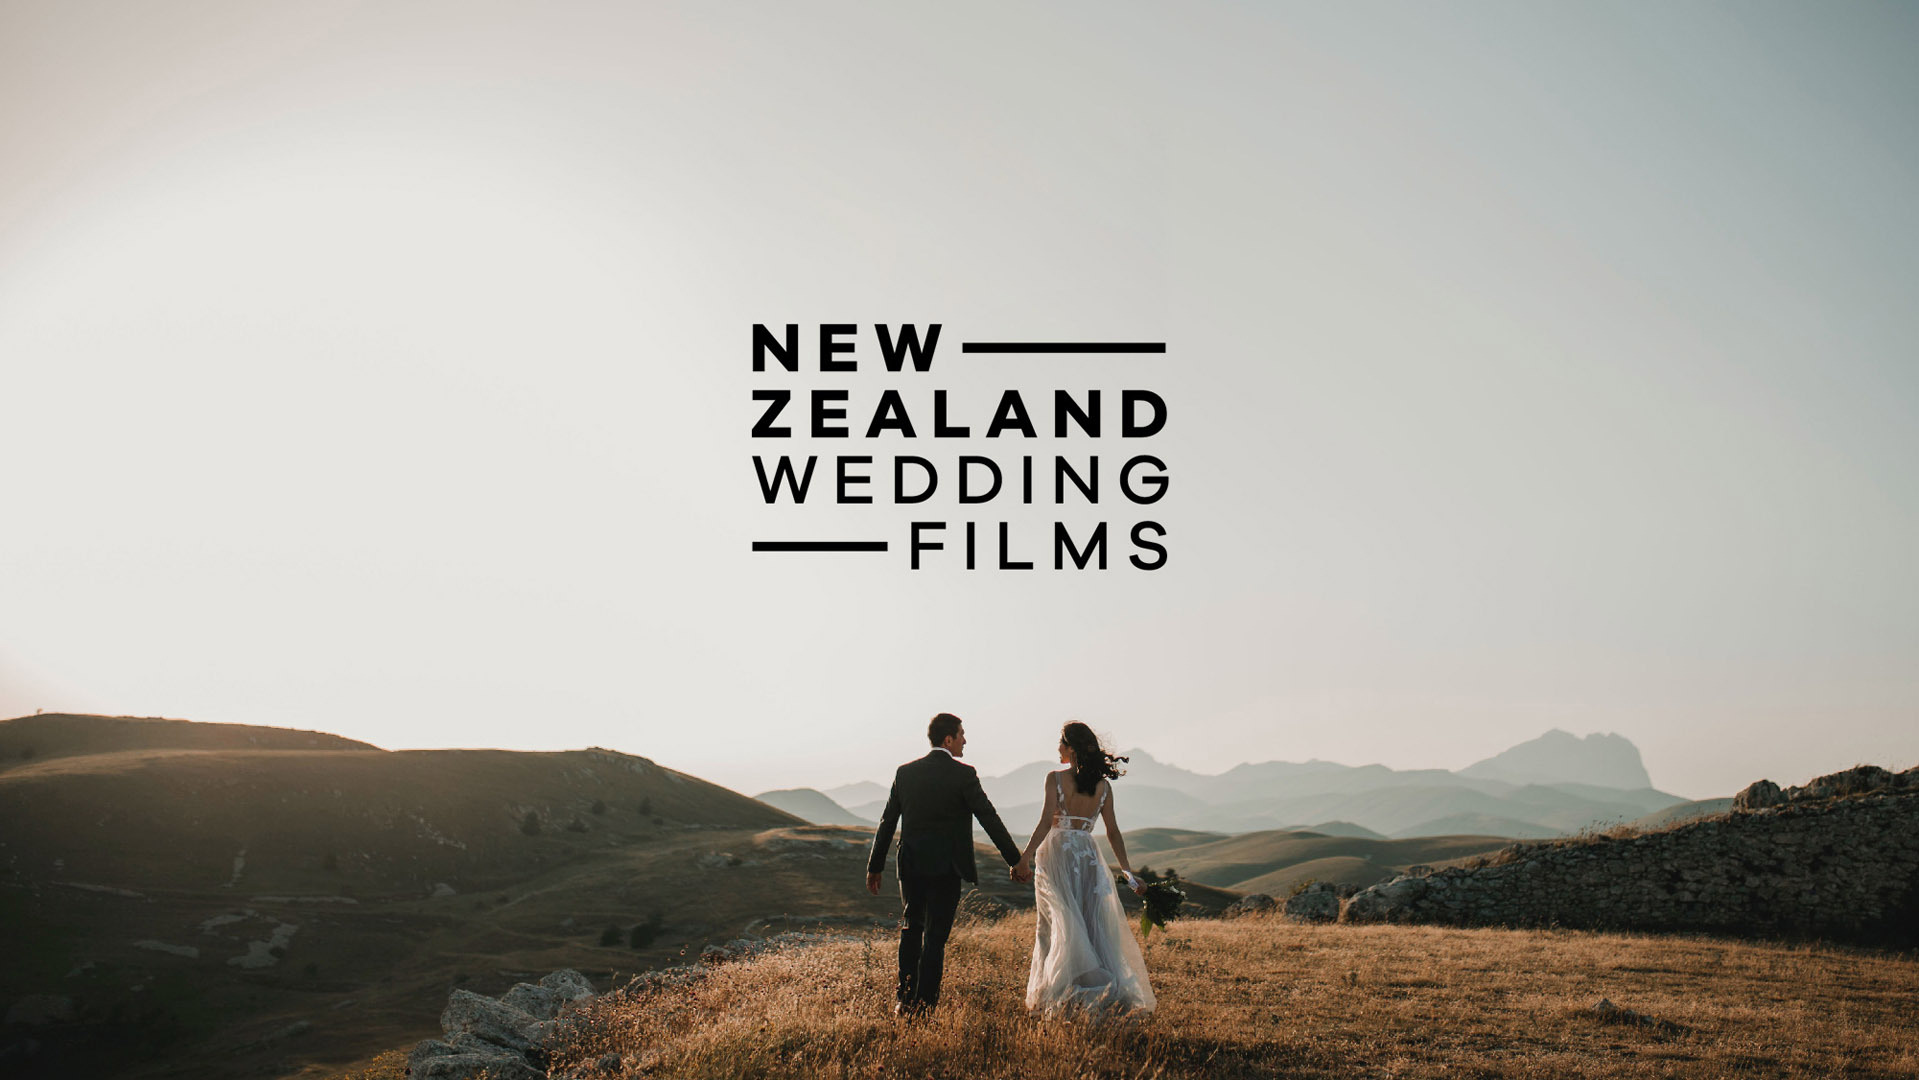 New Zealand Wedding Films